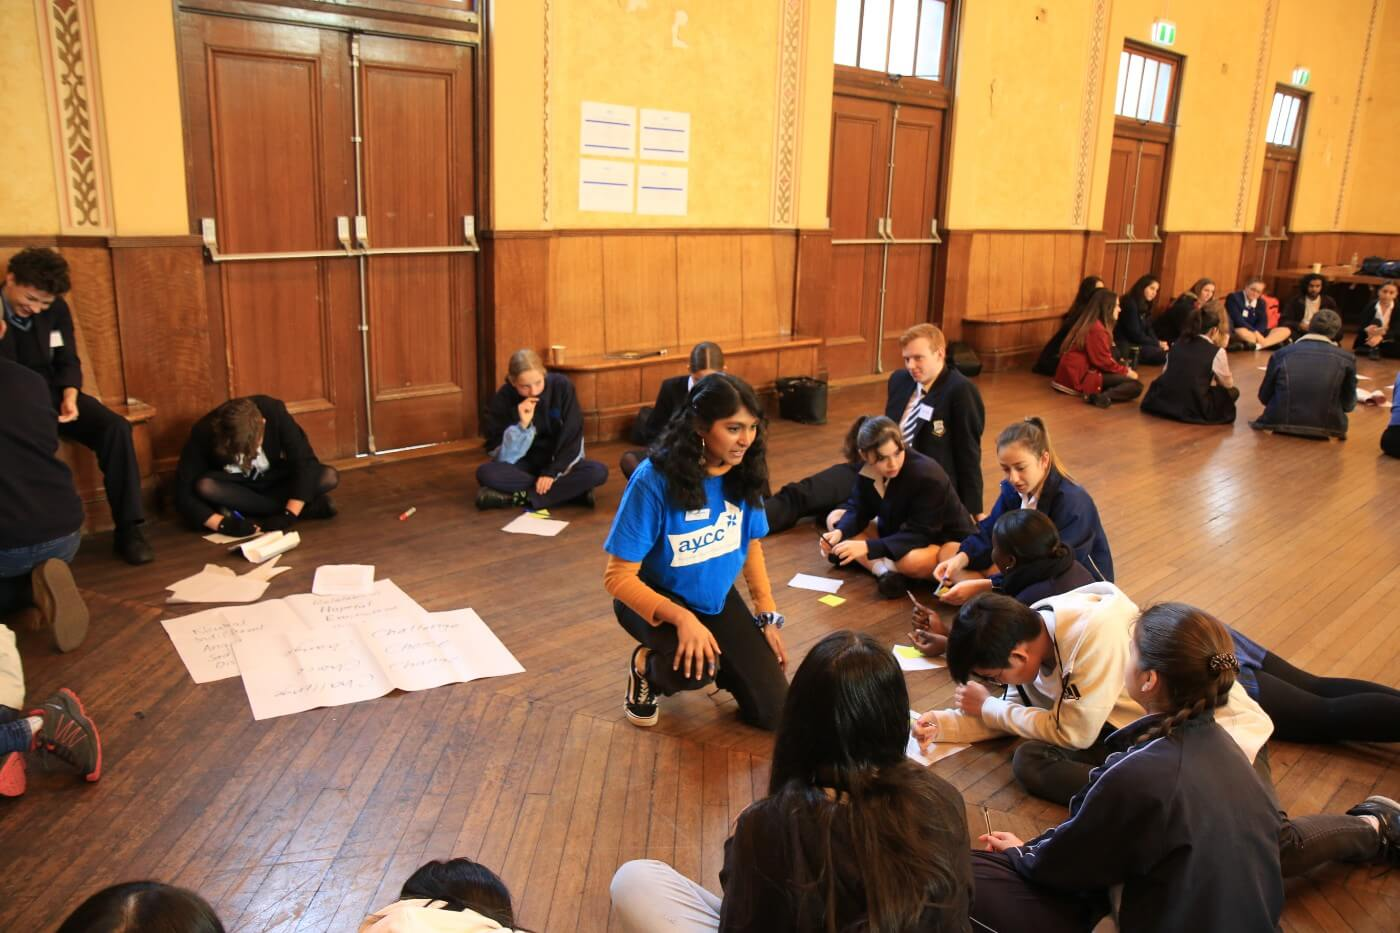 Grace facilitates a workshop with school children in a school hall.